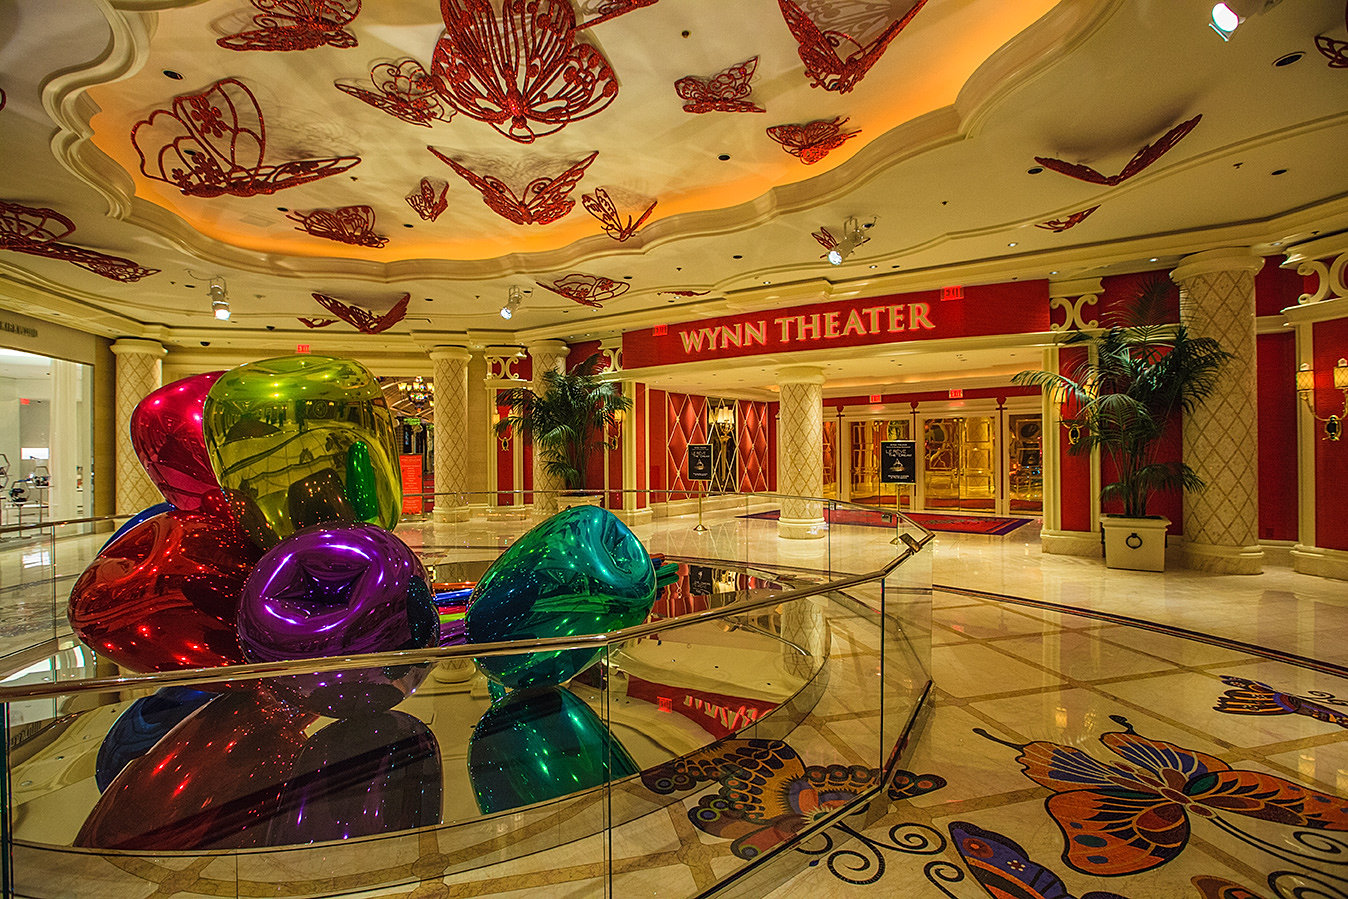 Bukhari Design Studio Las Vegas Interior Design Firm Le Reve Theater Rotunda